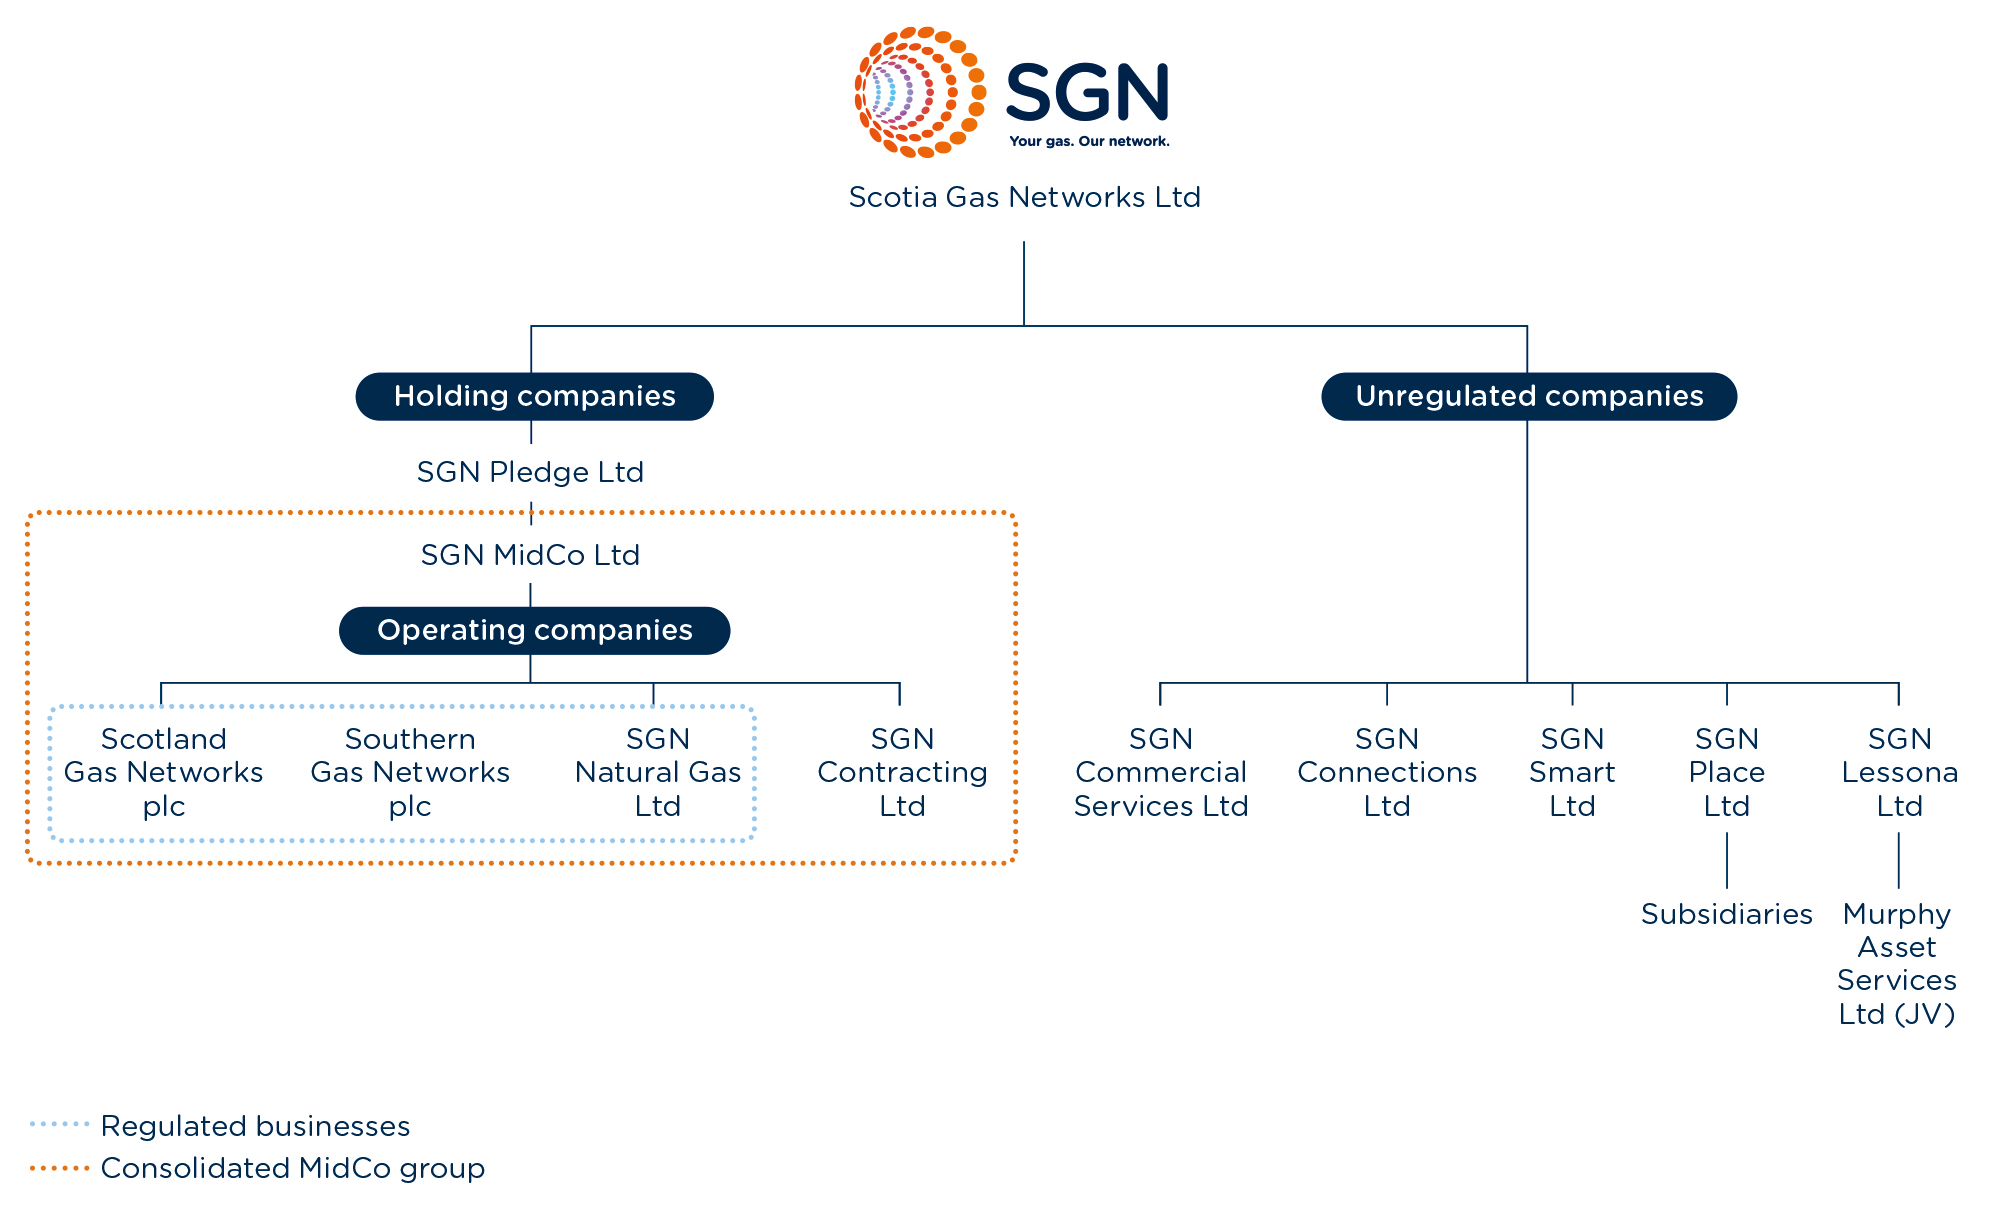 SGN group structure diagram showing holding companies and unregulated companies. Under Scotia Gas Networks SGN Pledge Ltd which is a holding company for SGN MidCo Ltd. Under this is the 4 operating companies: Scotland Gas Networks, Southern Gas Networks, SGN Natural Gas and SGN Contracting. Under Scotia Gas Networks is also a number of unregulated companies. These are: SGN Commercial Services, SGN Connections, SGN Smart, SGN Place and SGN Lessona.